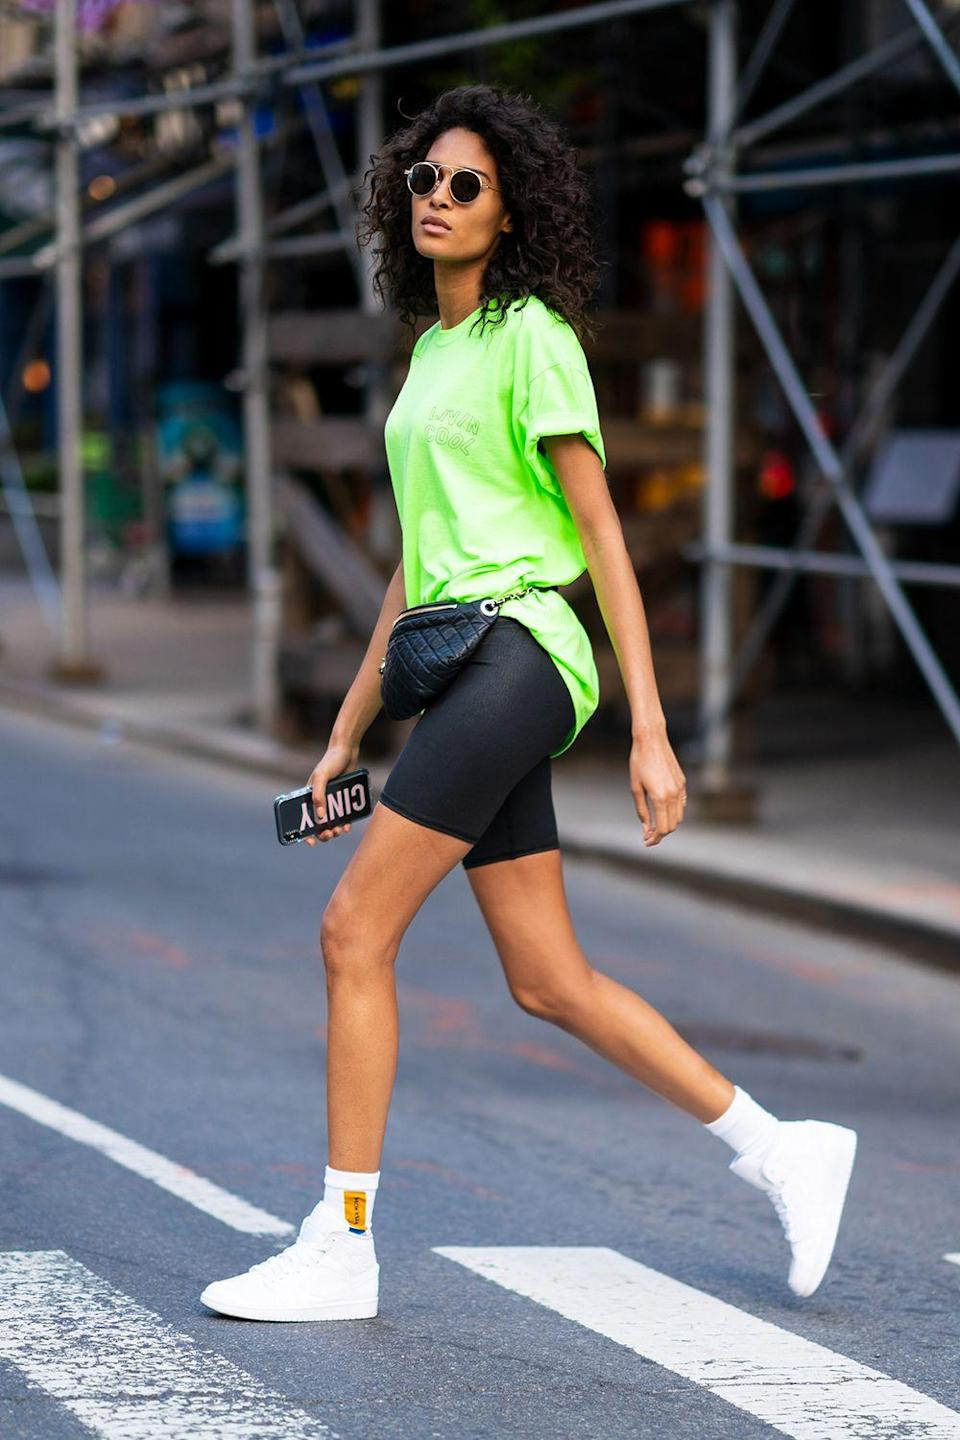 """<p class=""""body-dropcap"""">Trends come and go, but bike shorts and leggings are forever. It can seem wild to remember how the internet once argued—like, <em>a lot</em>—over whether leggings were pants or not because, hello, is there really any doubt at this point? And now it's 2021 and their cropped cousin, <a href=""""https://www.cosmopolitan.com/style-beauty/fashion/a22718139/bike-shorts-trend/"""" rel=""""nofollow noopener"""" target=""""_blank"""" data-ylk=""""slk:the bike short"""" class=""""link rapid-noclick-resp"""">the bike short</a>, has fully been accepted as shorts (and high-fashion ones at that).</p><p>With a rebound summer and revenge travel on the horizon, we need a wardrobe that feels good and looks better, and there's nothing cut out for the task quite as well as stretchy, soft, curve-hugging leggings and bike shorts. Add to that another widely accepted fact—that shopping for anything on <a href=""""https://www.amazon.com/?tag=syn-yahoo-20&ascsubtag=%5Bartid%7C10049.g.36641359%5Bsrc%7Cyahoo-us"""" rel=""""nofollow noopener"""" target=""""_blank"""" data-ylk=""""slk:Amazon"""" class=""""link rapid-noclick-resp"""">Amazon</a> is the easiest way to go—and it felt like the right time to do a deep dive on the various Amazon brands that make some super worth-it options.</p>"""